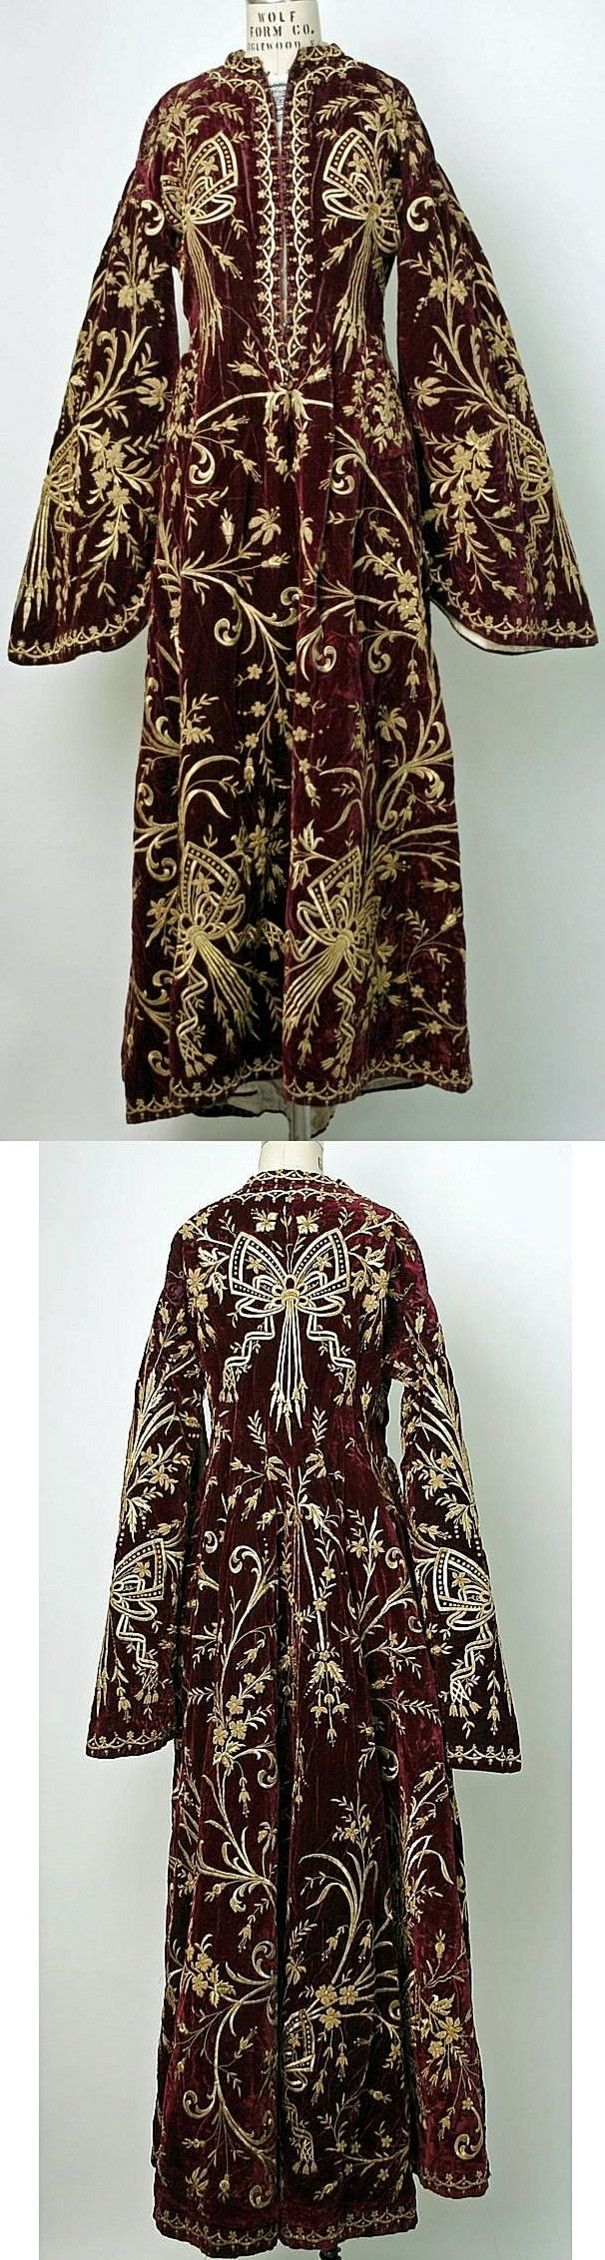 Turkish woman's robe. Late-Ottoman, urban fashion, mid-19th century. 'Goldwork' embroidery on velvet. (Met Museum, N.Y.).